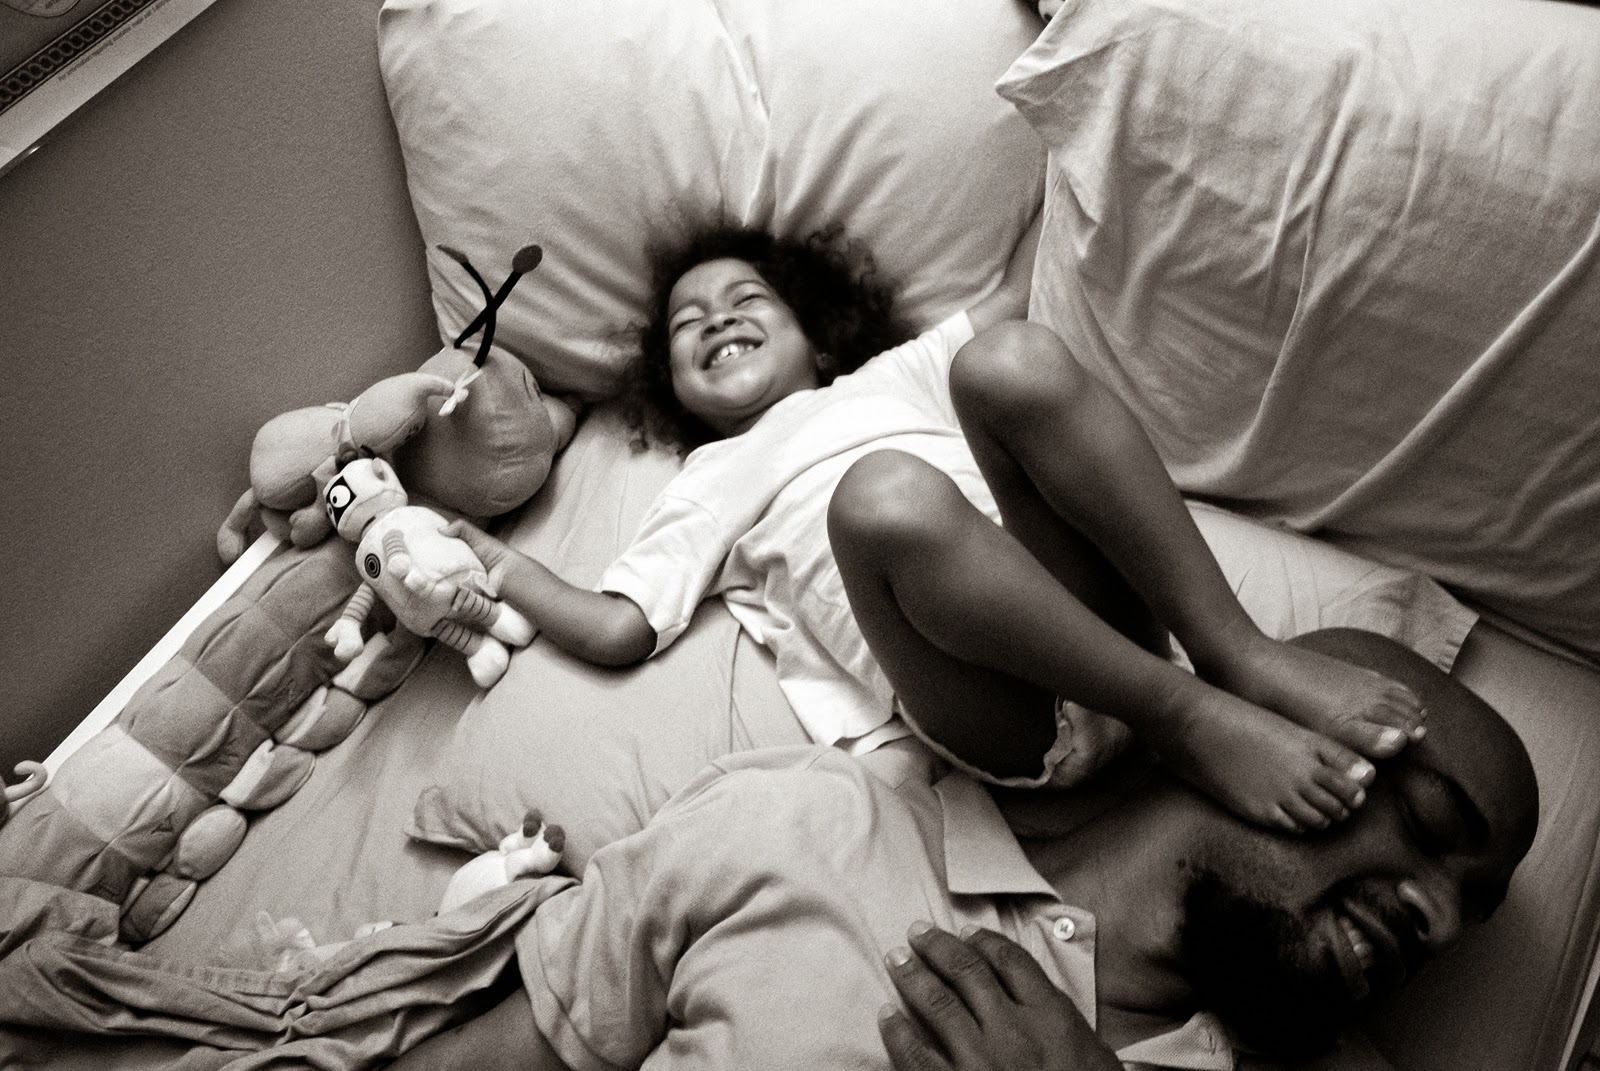 photo essay interview photographer interview zun lee neo griot from the series father figure by zun lee